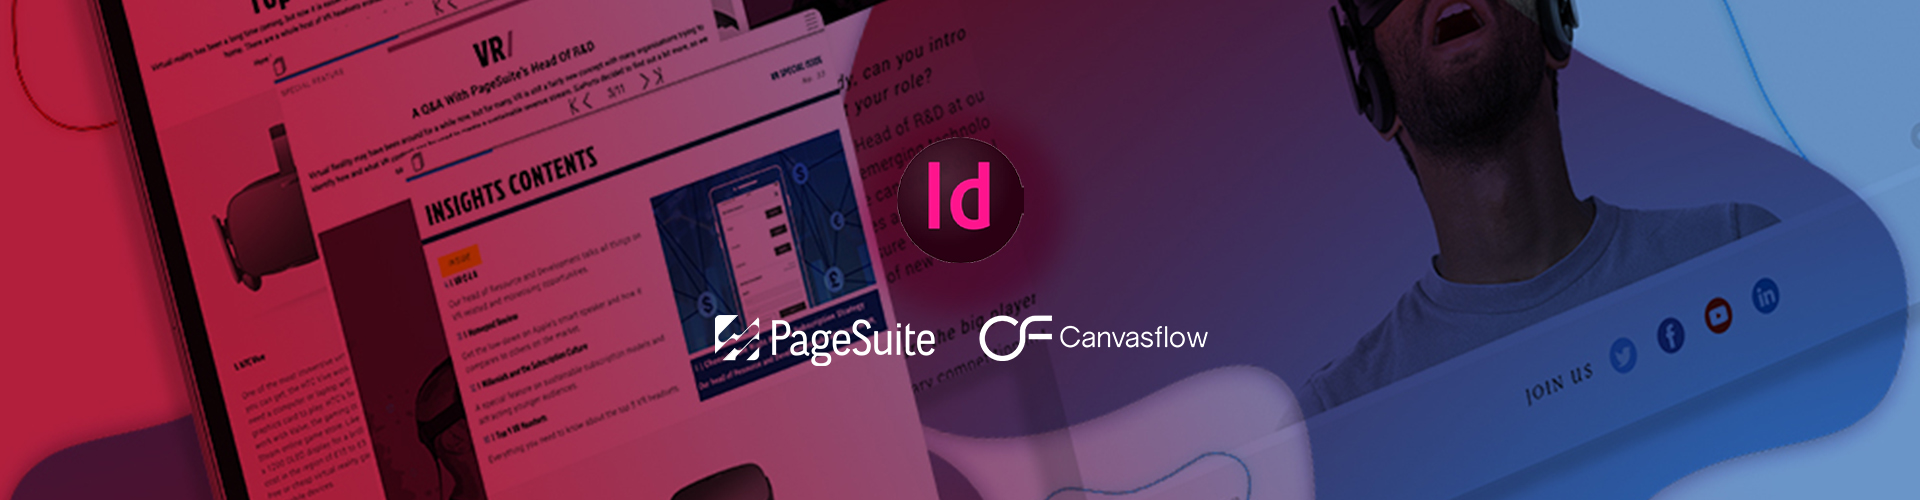 Header image of WEBINAR: Driving engagement:  From InDesign to responsive mobile editions